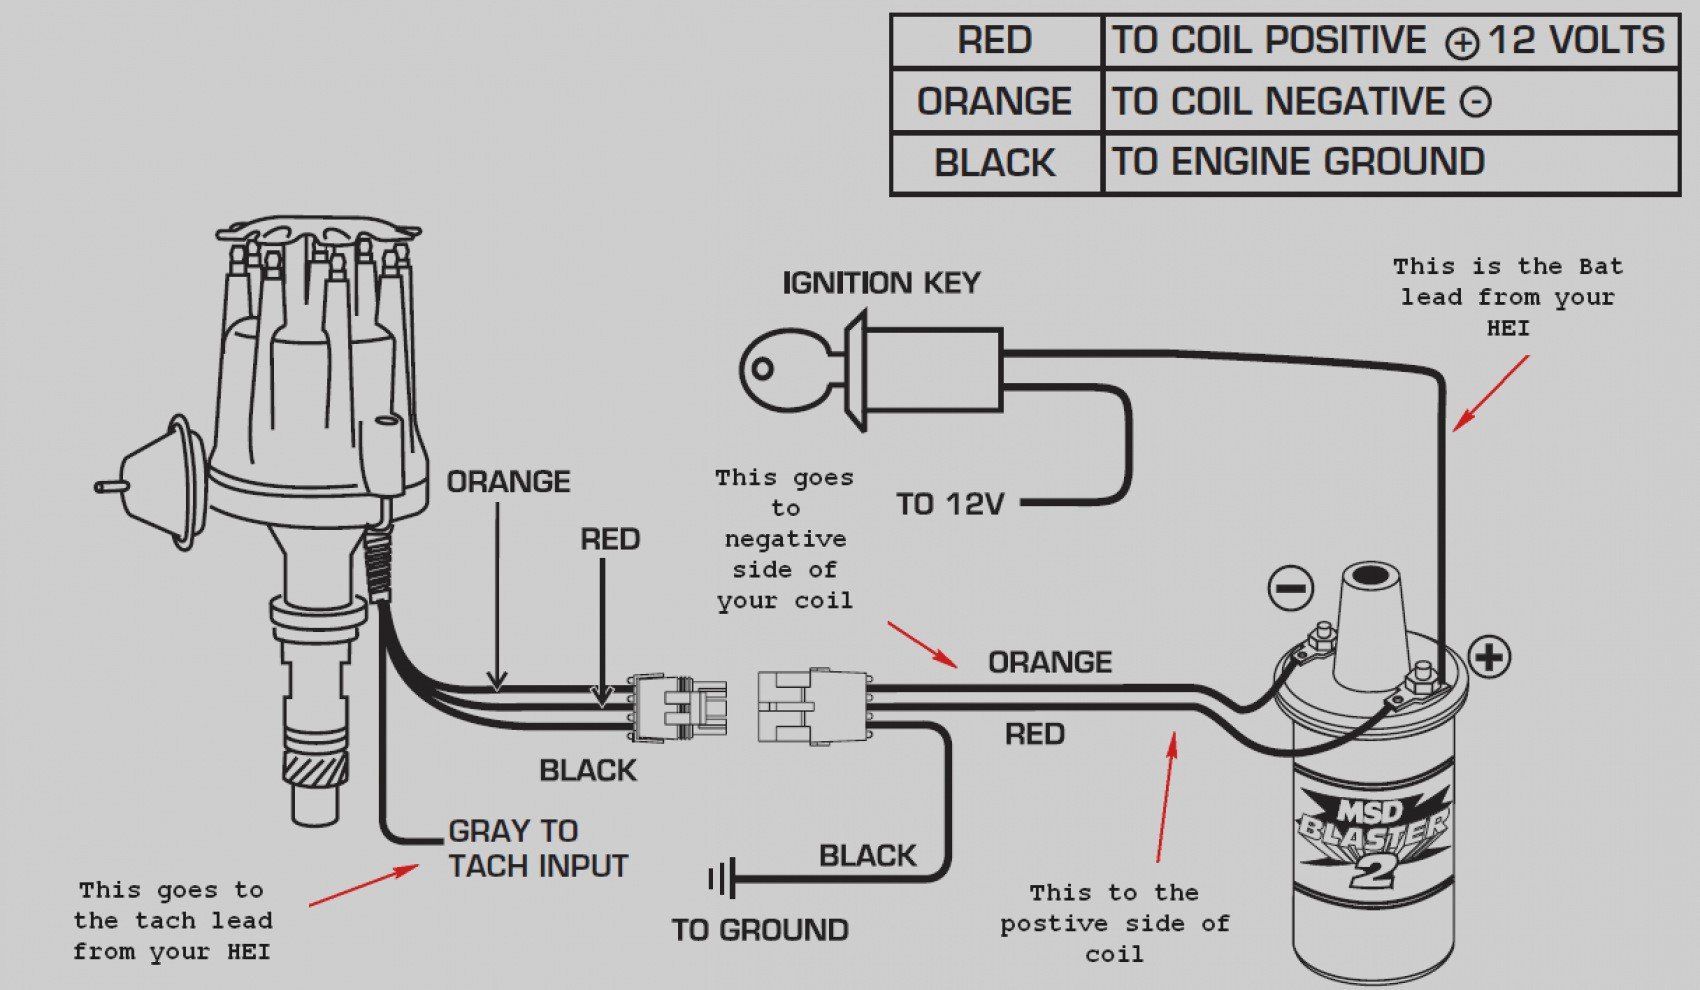 Chevy Blazer Spark Plug Wiring Diagrams Library Olds Rear Axle Diagram Free Download Schematic Unique 350 Wire Ignition Coil